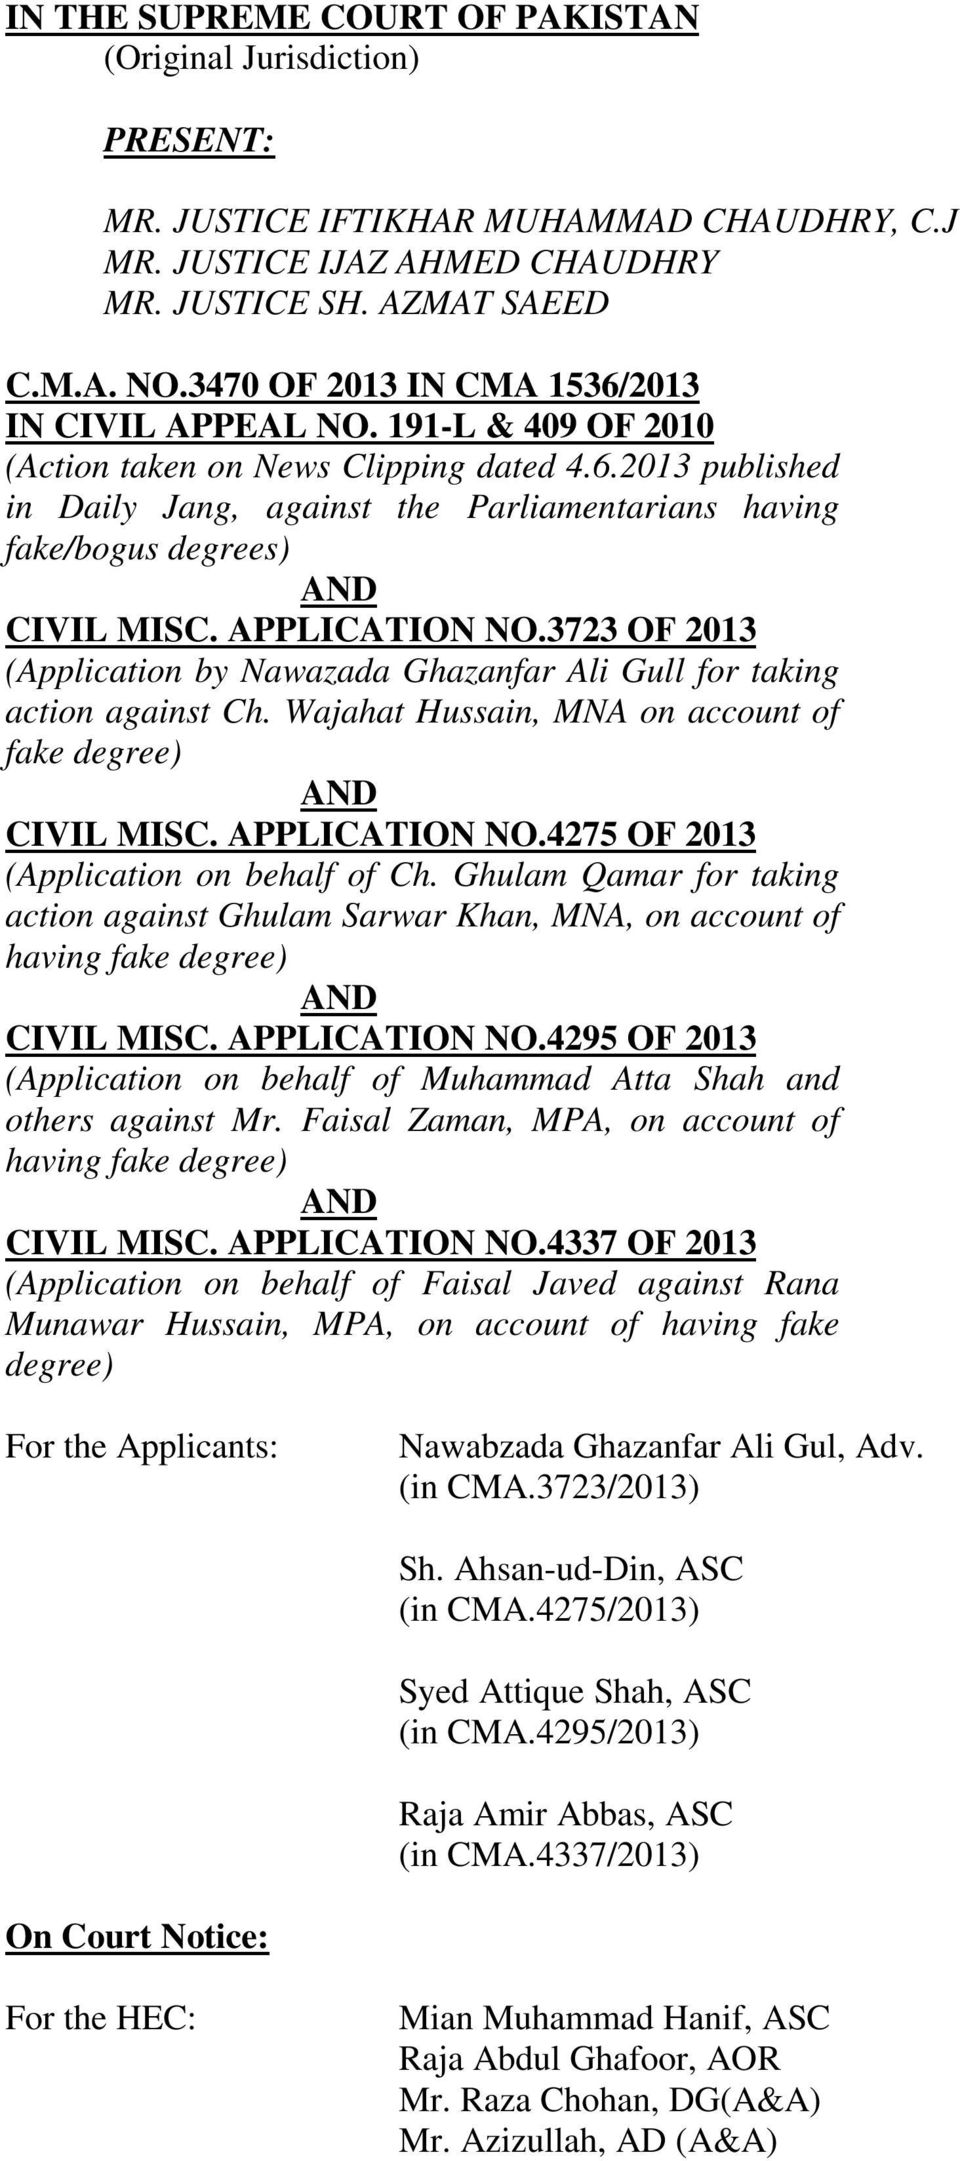 APPLICATION NO.3723 OF 2013 (Application by Nawazada Ghazanfar Ali Gull for taking action against Ch. Wajahat Hussain, MNA on account of fake degree) AND CIVIL MISC. APPLICATION NO.